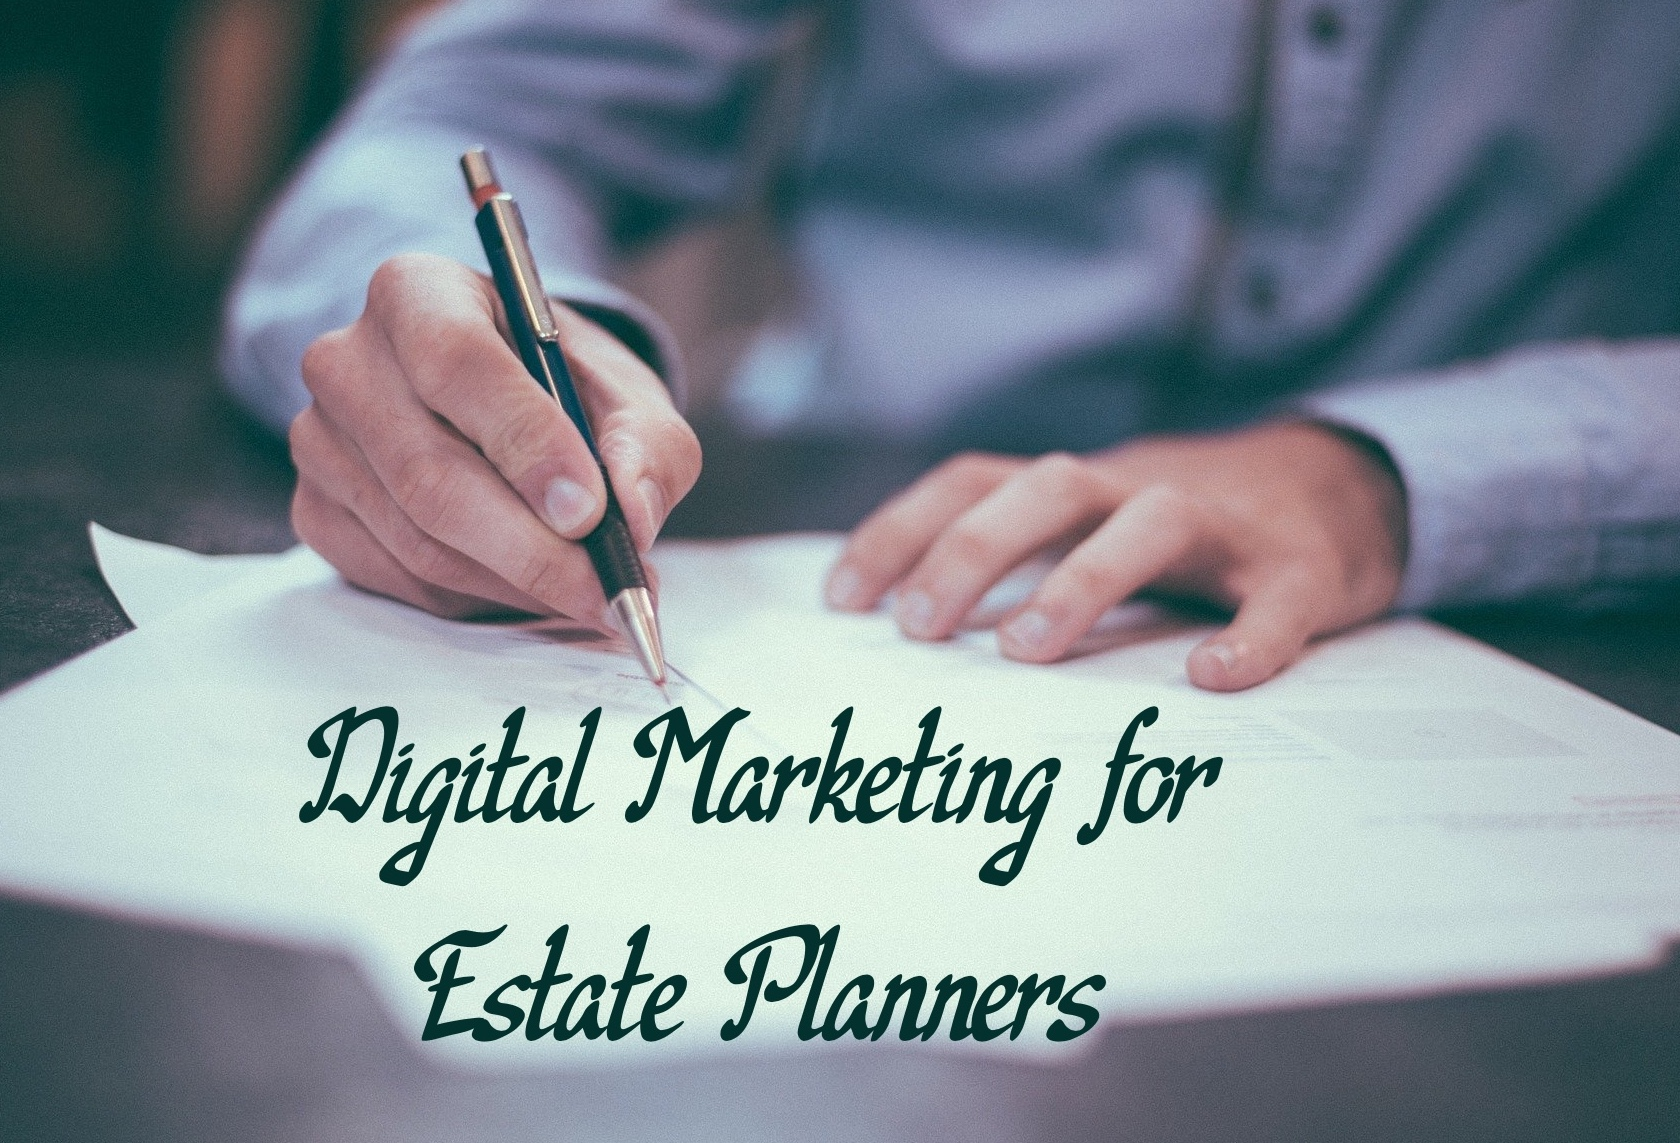 Digital marketing for estate planners